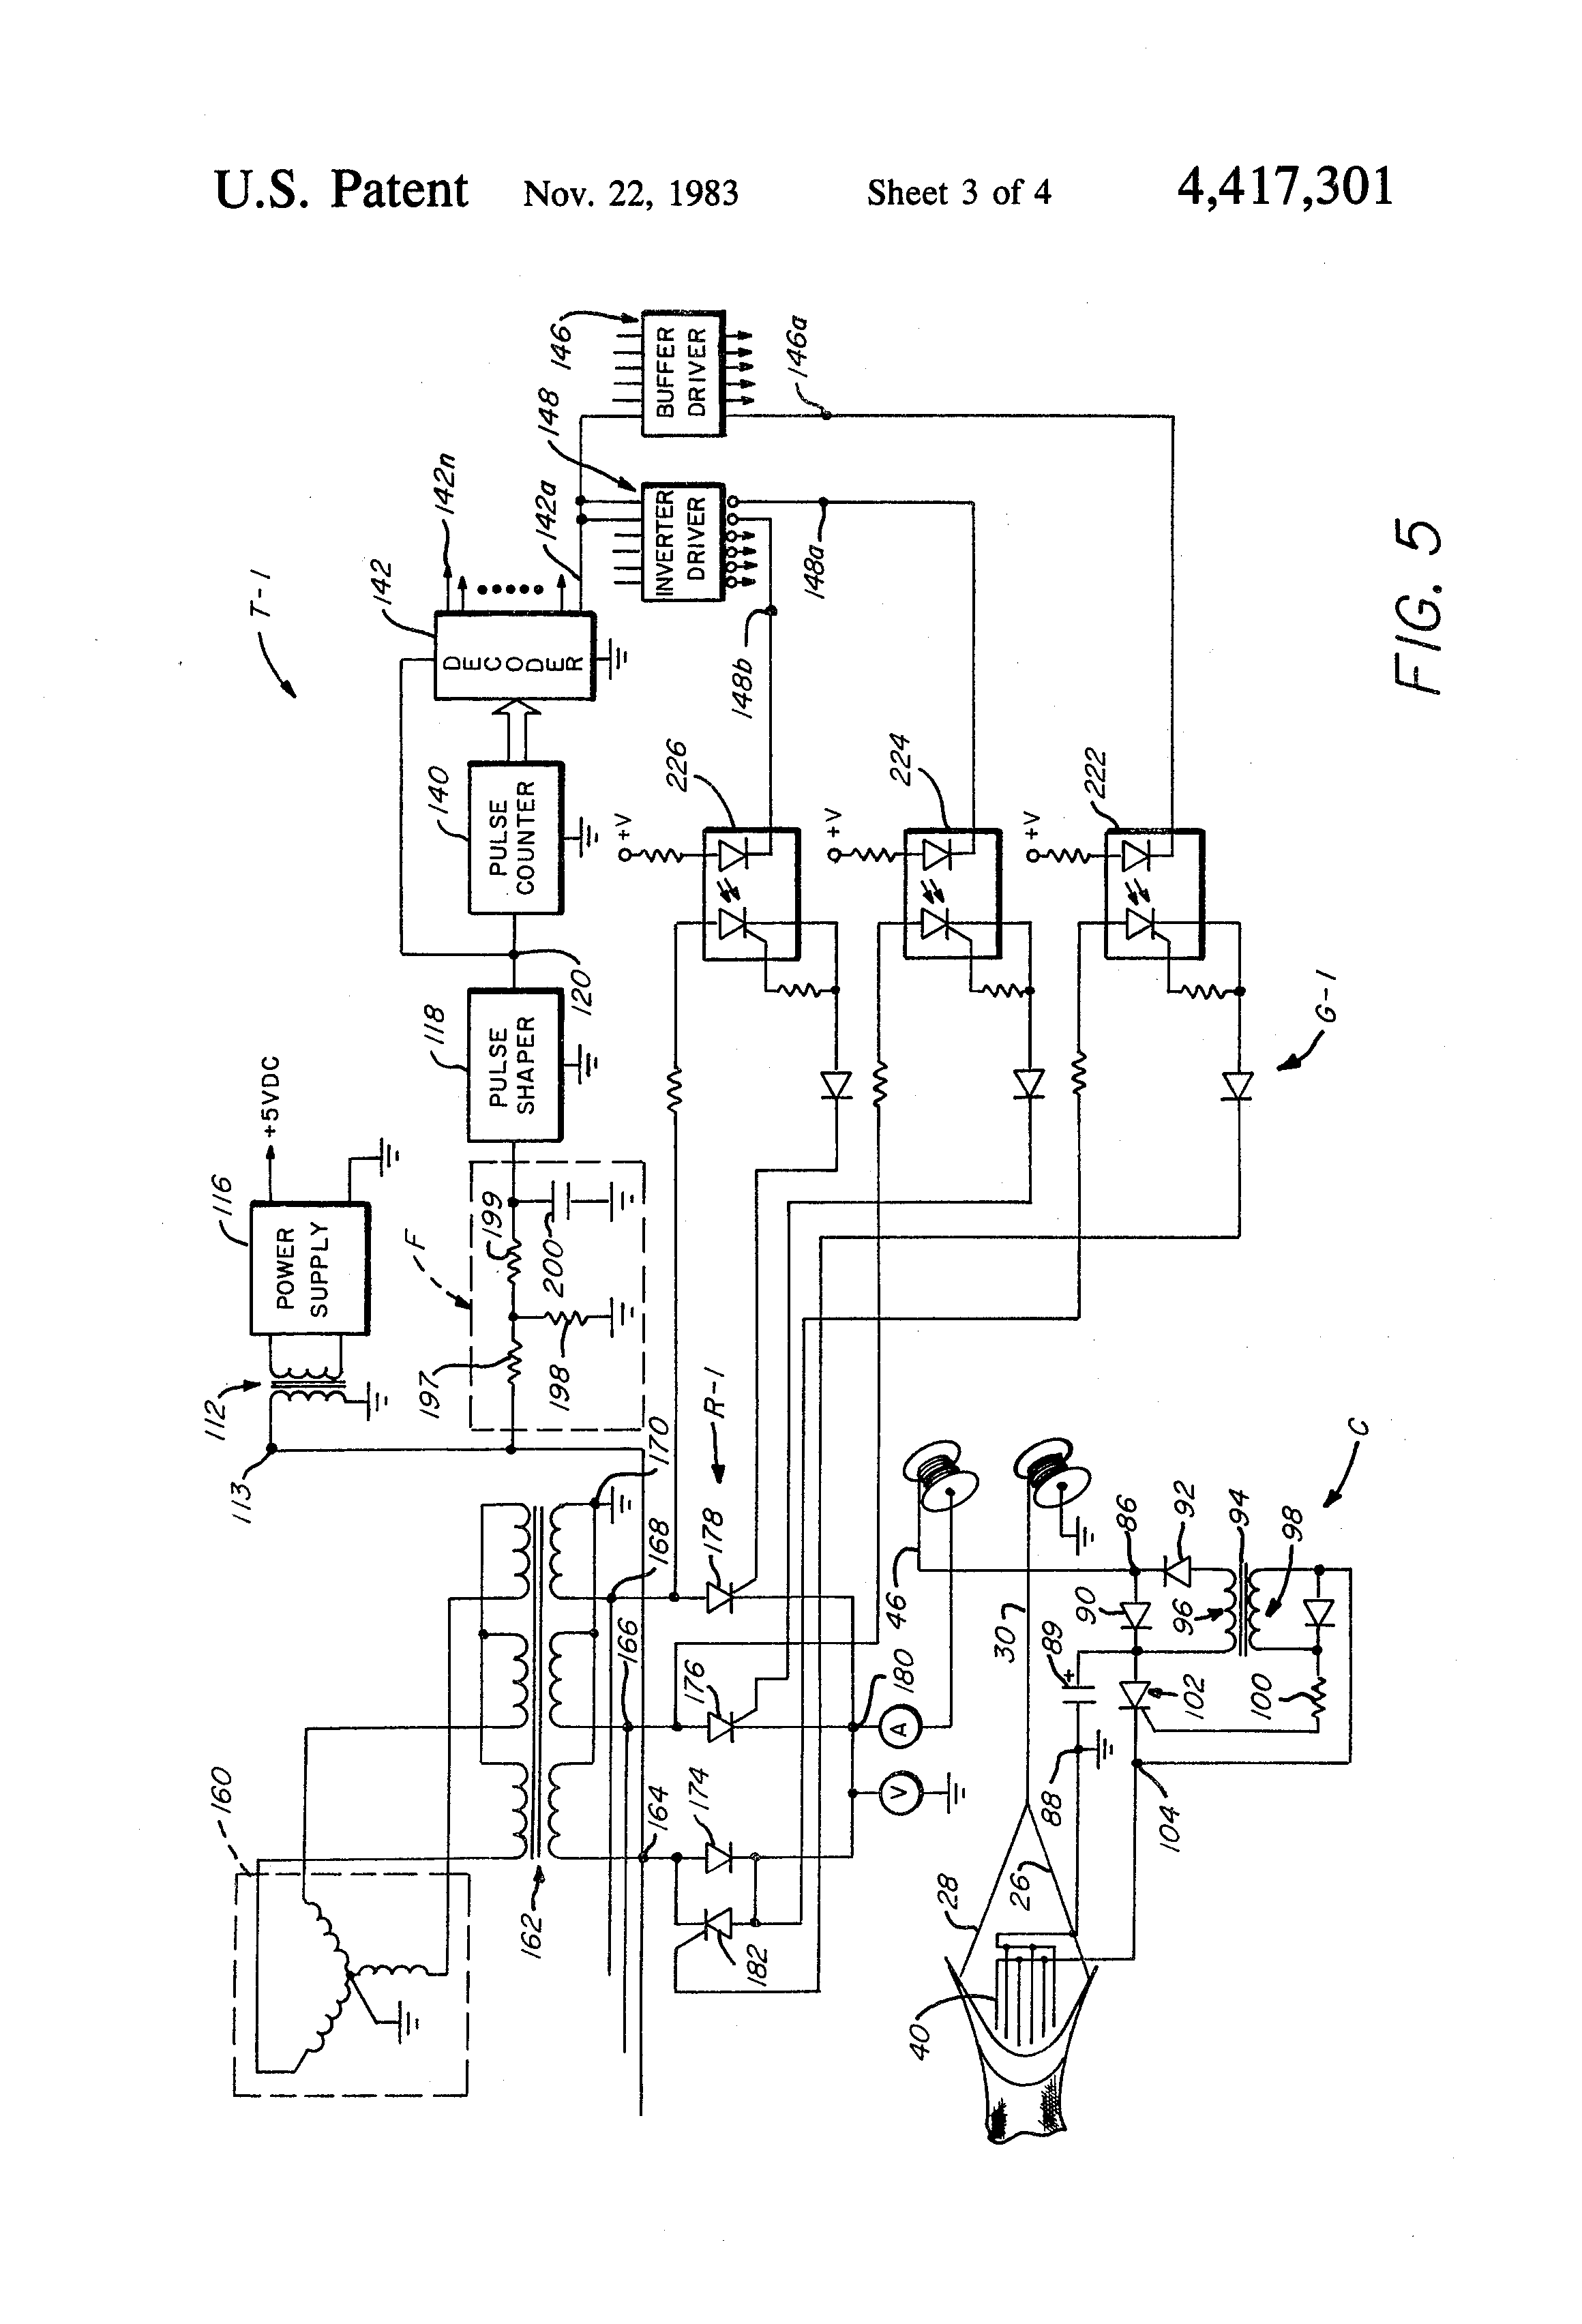 patent us4417301 - method and apparatus for electric fish trawling, Wiring diagram